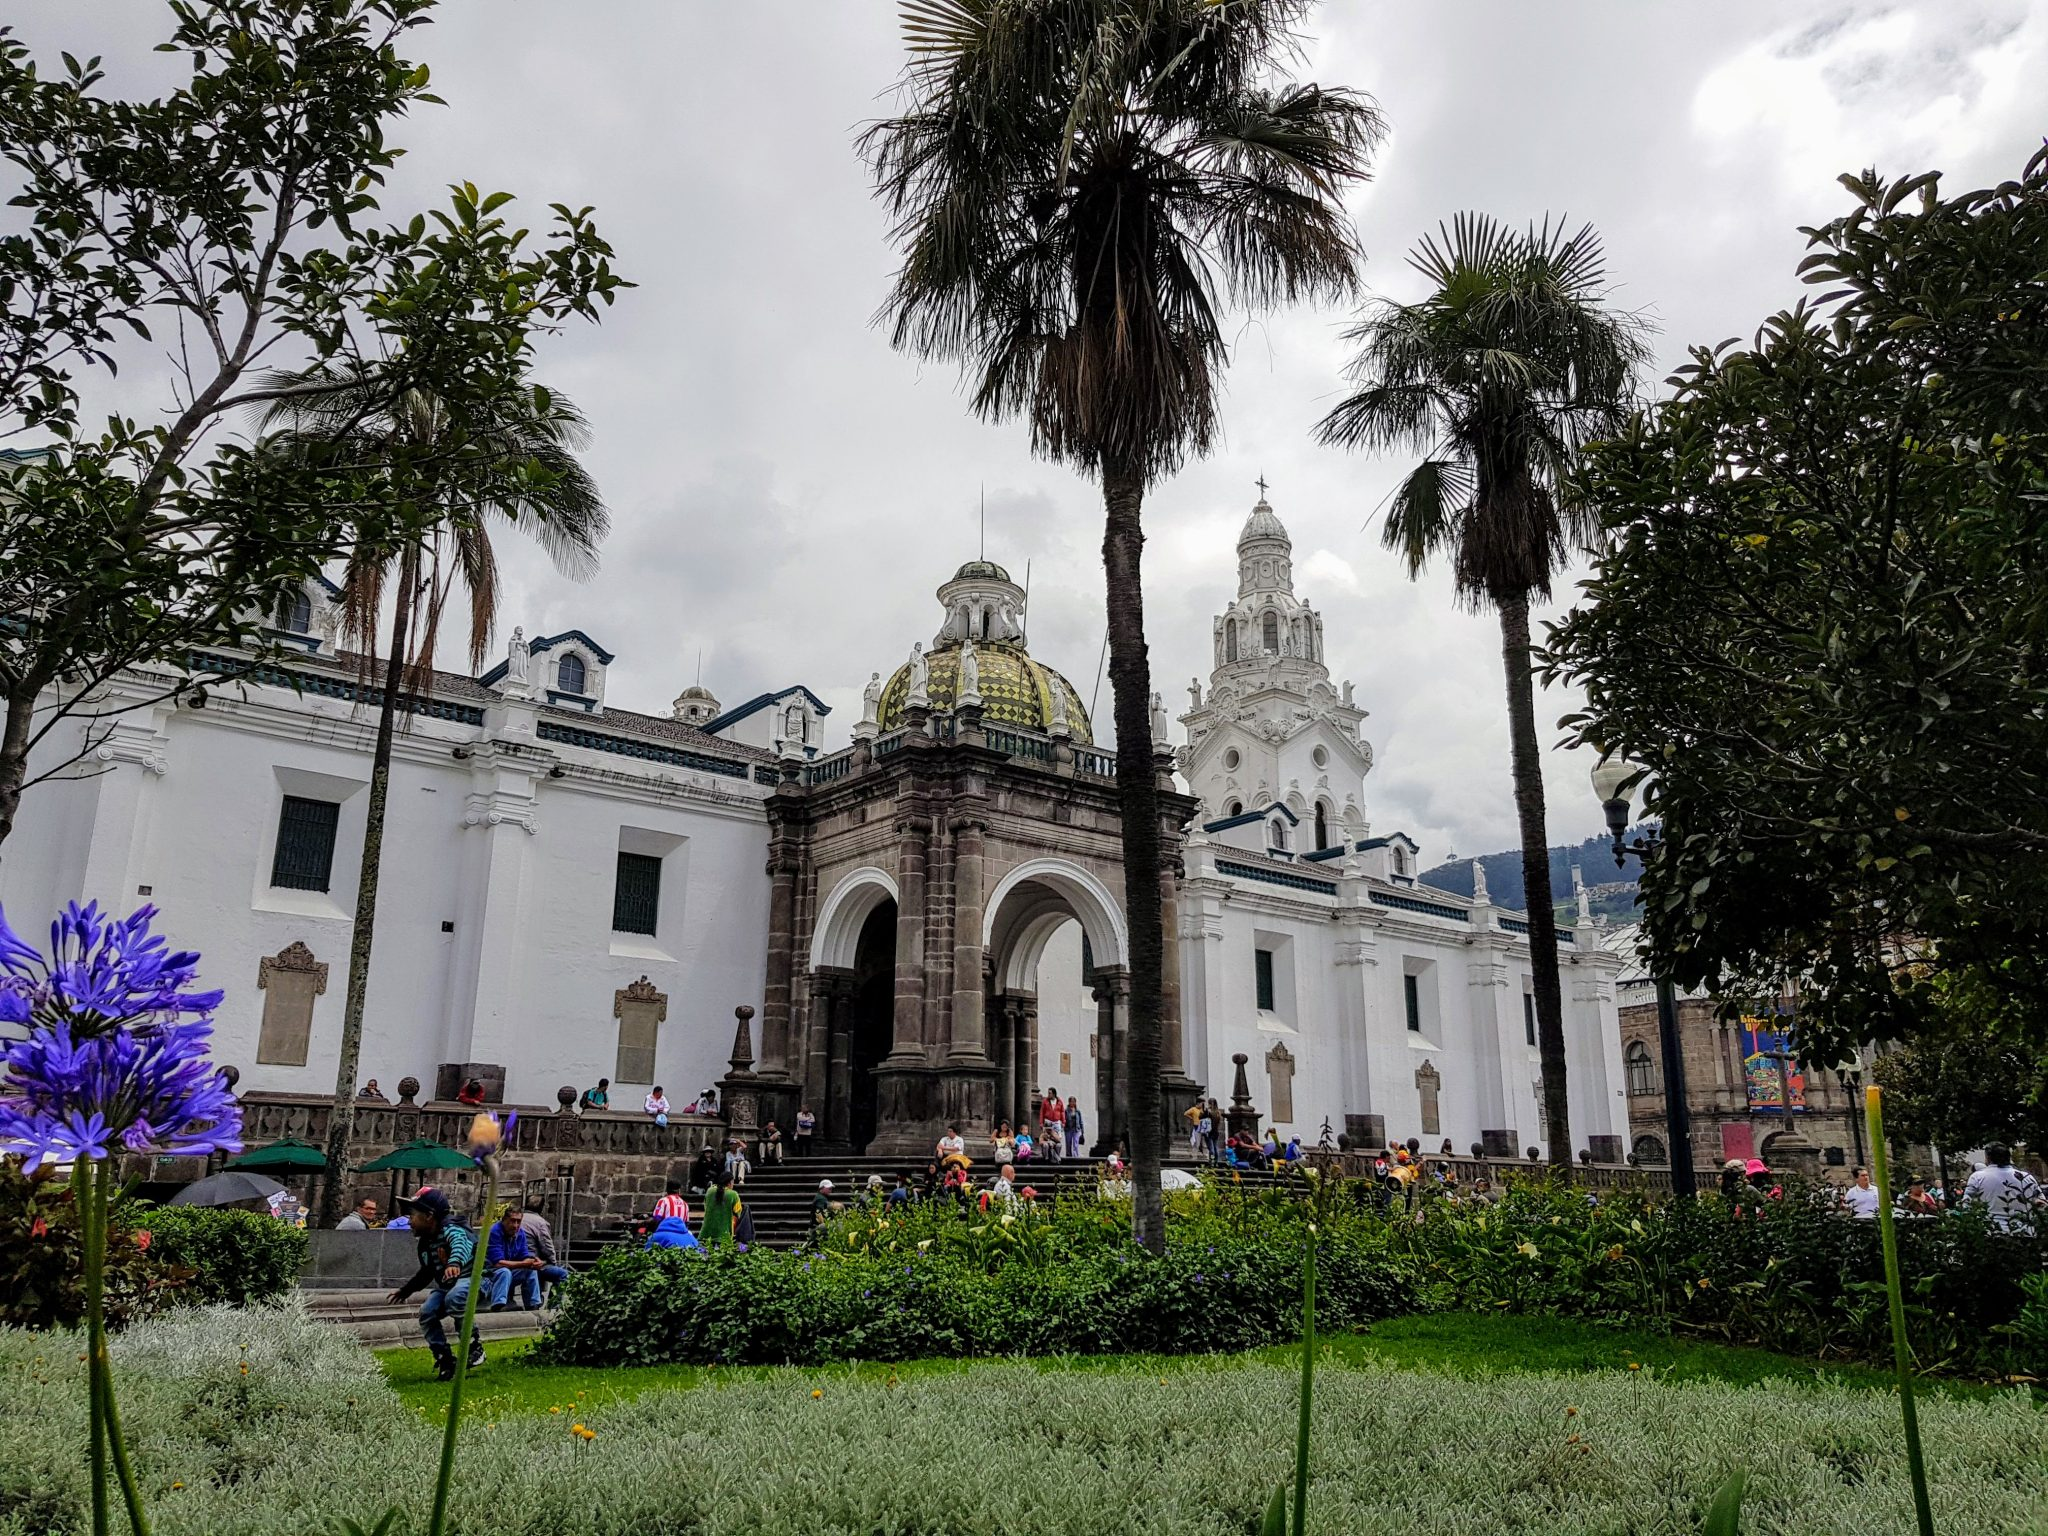 Quito Old Town & Equator Day Tour